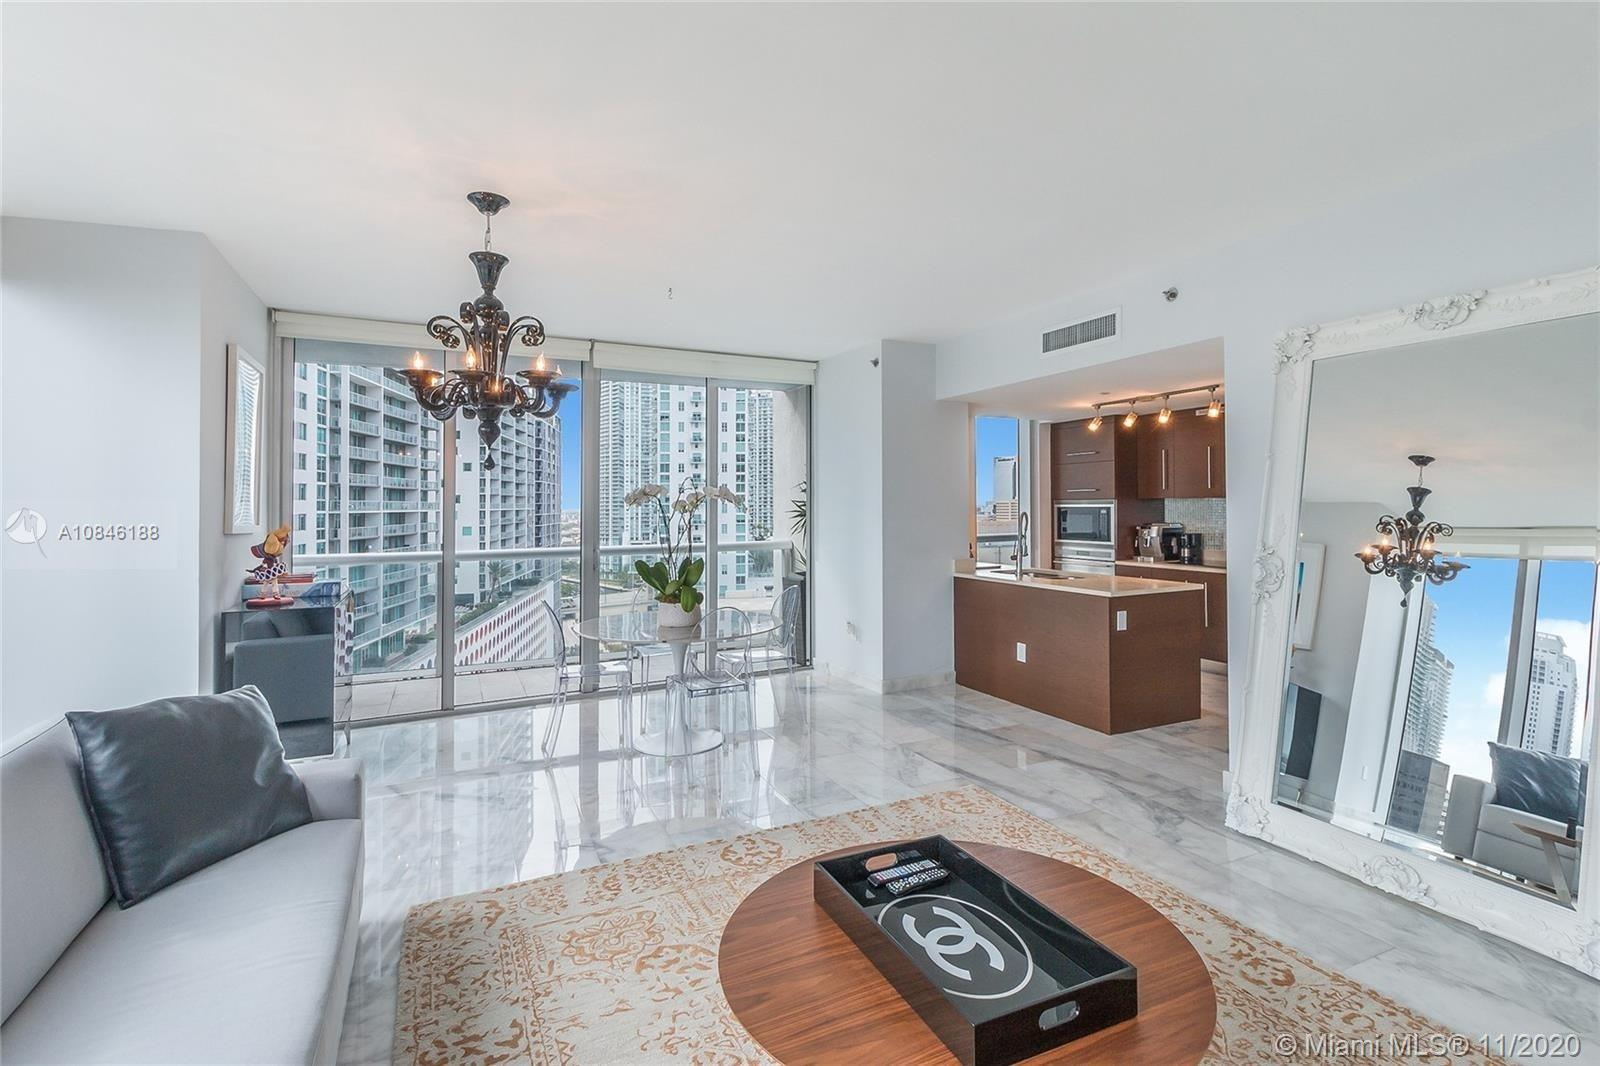 Icon Brickell 3 #1708 - 485 Brickell Ave #1708, Miami, FL 33131